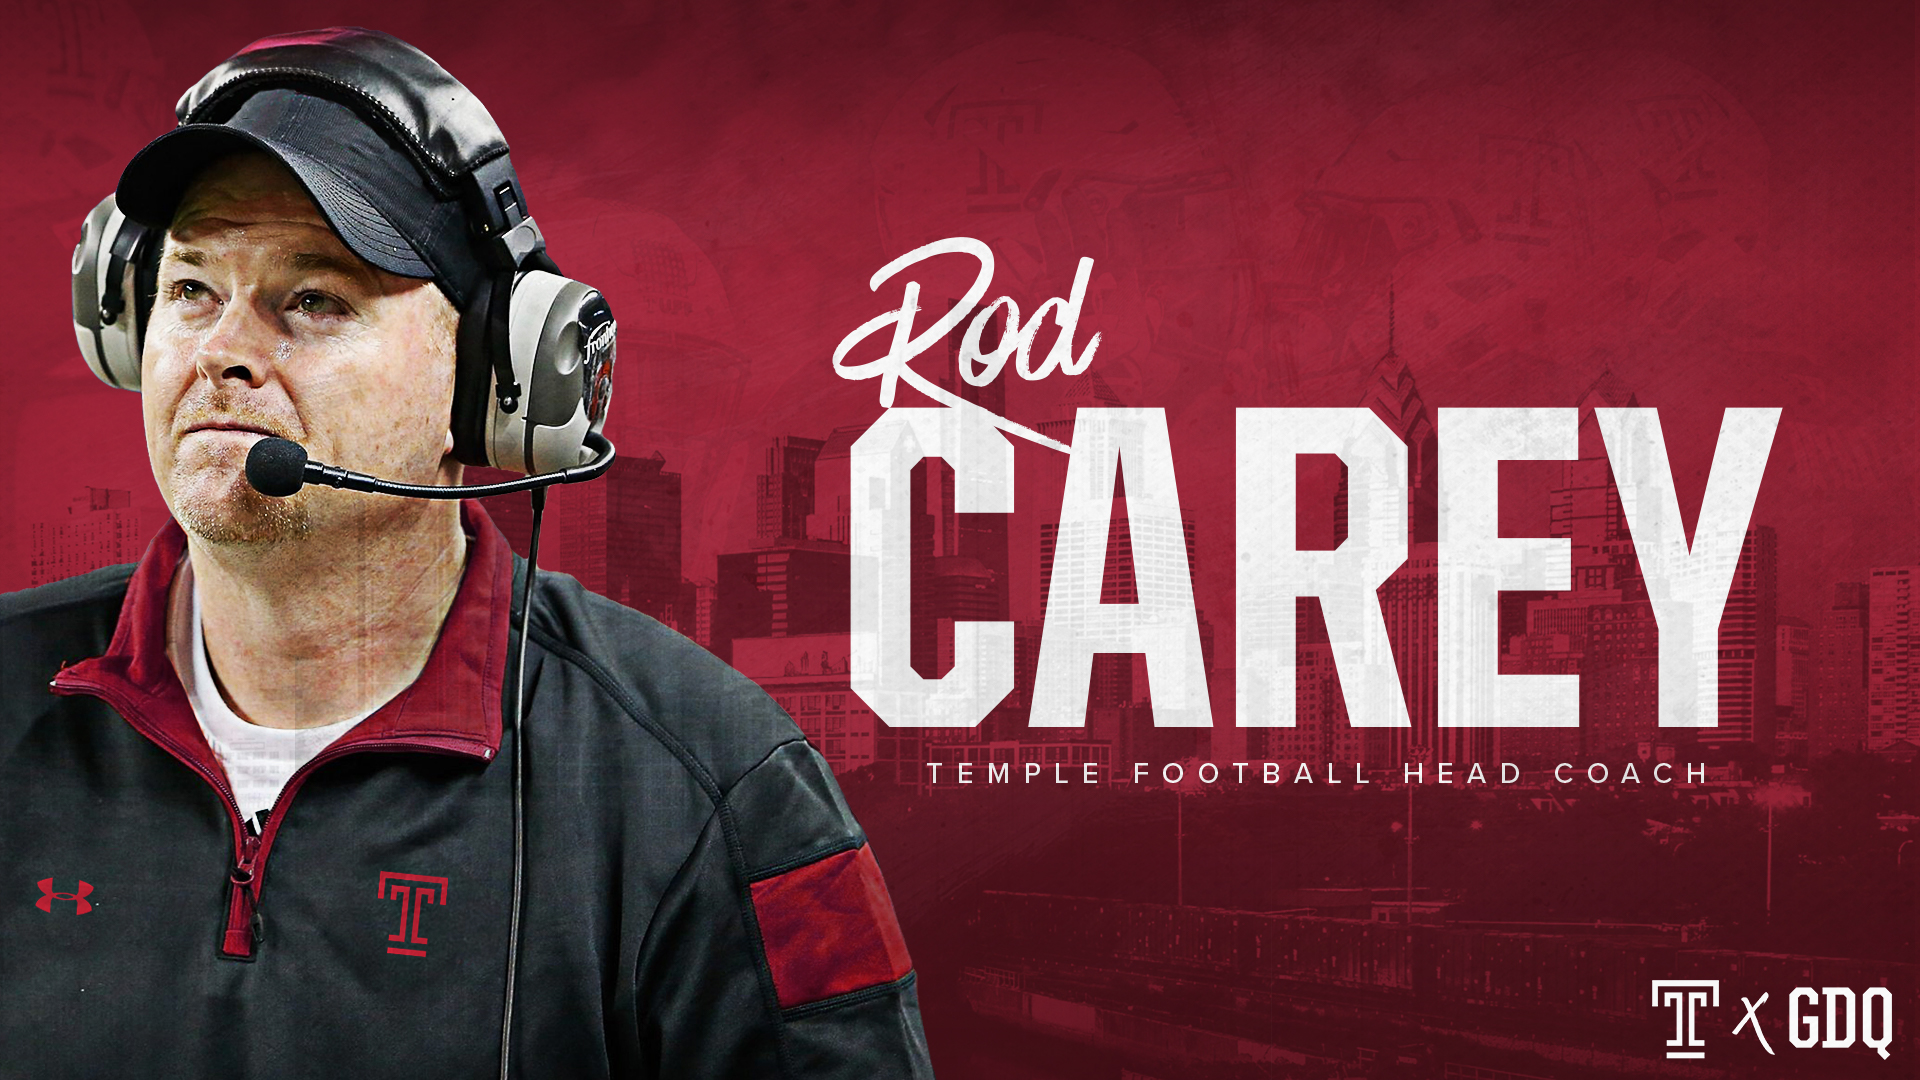 e097380c0 Rod Carey Named Temple Head Football Coach - Temple University Athletics